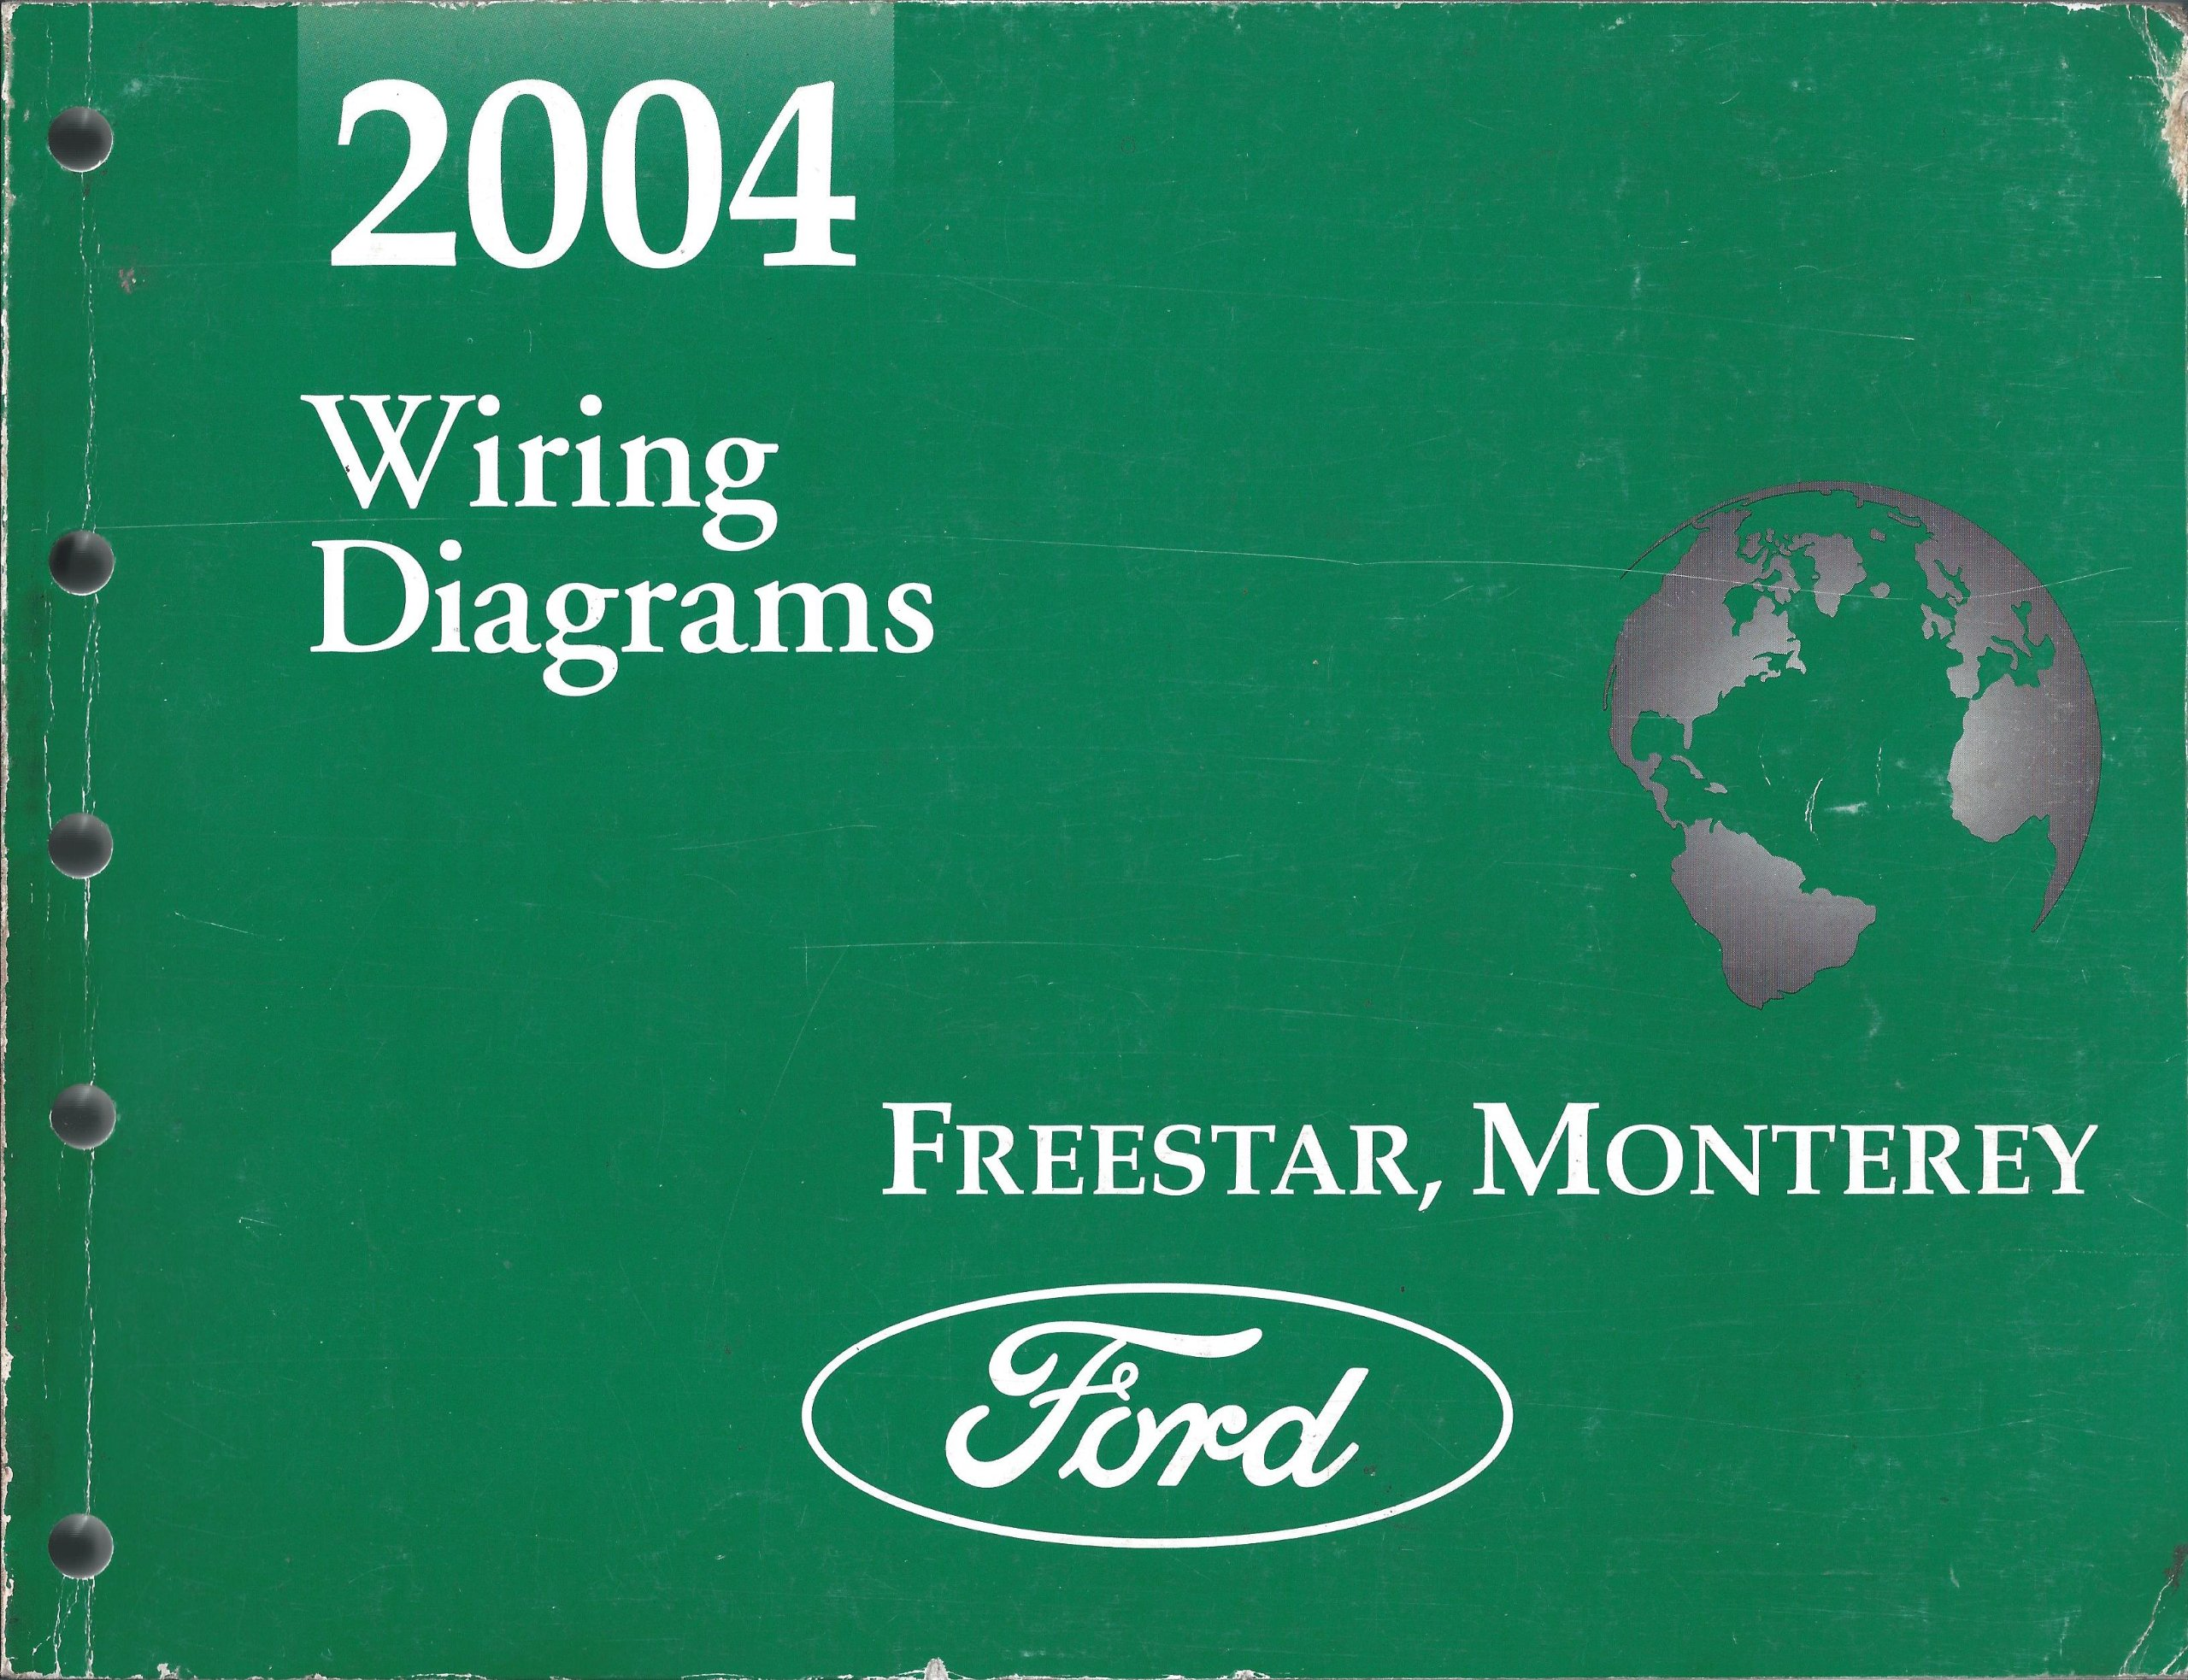 2004 Freestar And Monterey Wiring Diagram Ford Motor Company 04 Books